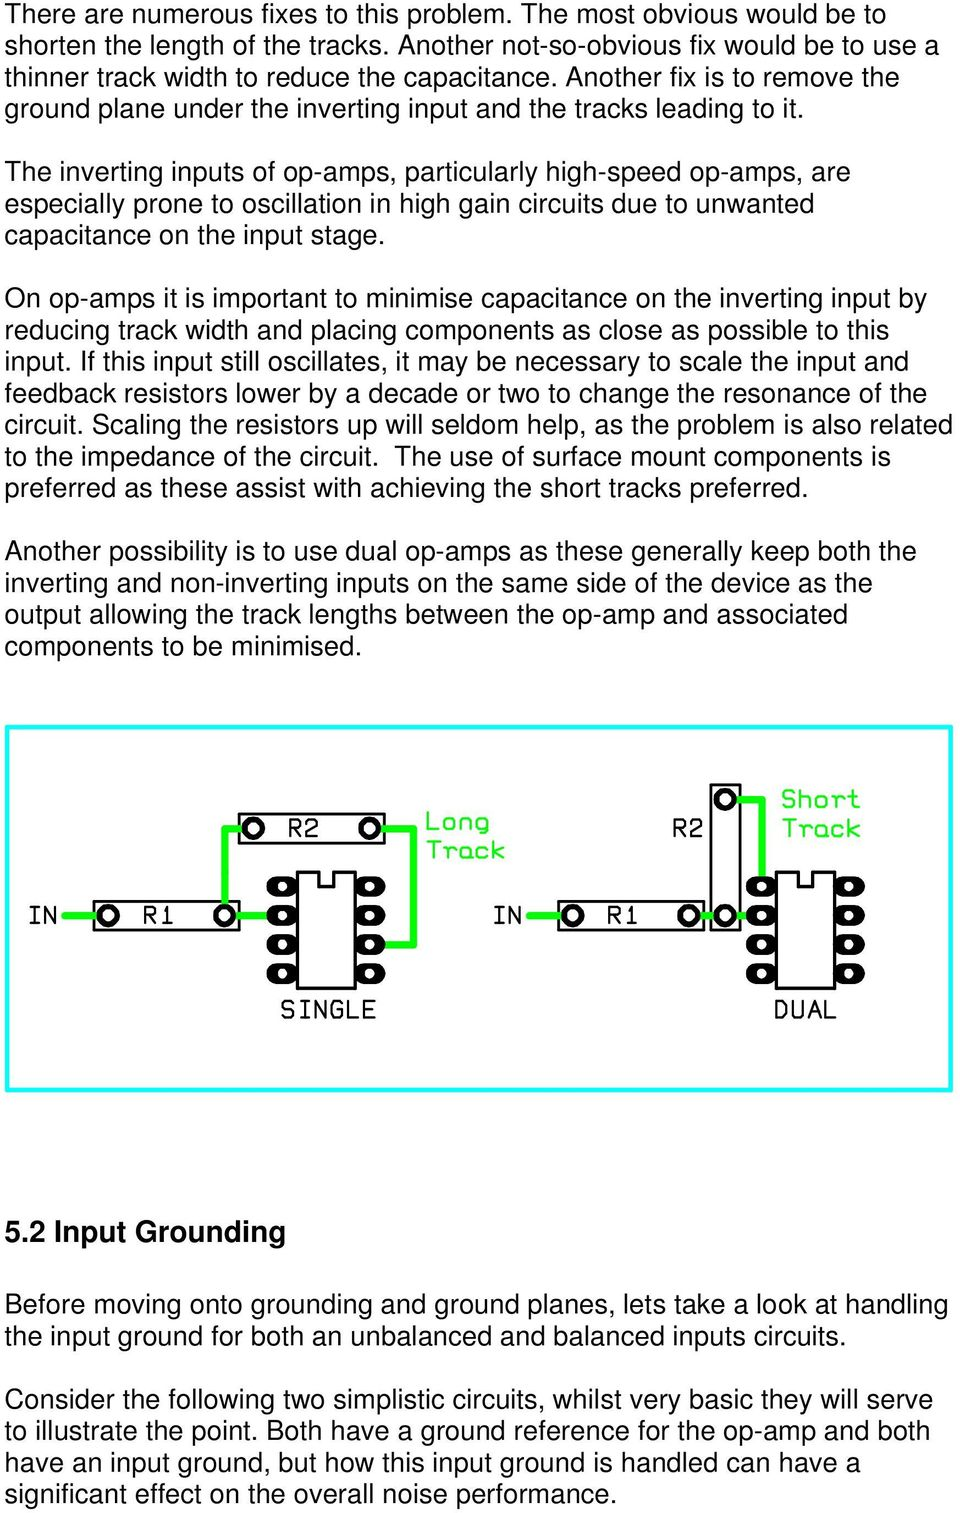 The inverting inputs of op-amps, particularly high-speed op-amps, are especially prone to oscillation in high gain circuits due to unwanted capacitance on the input stage.